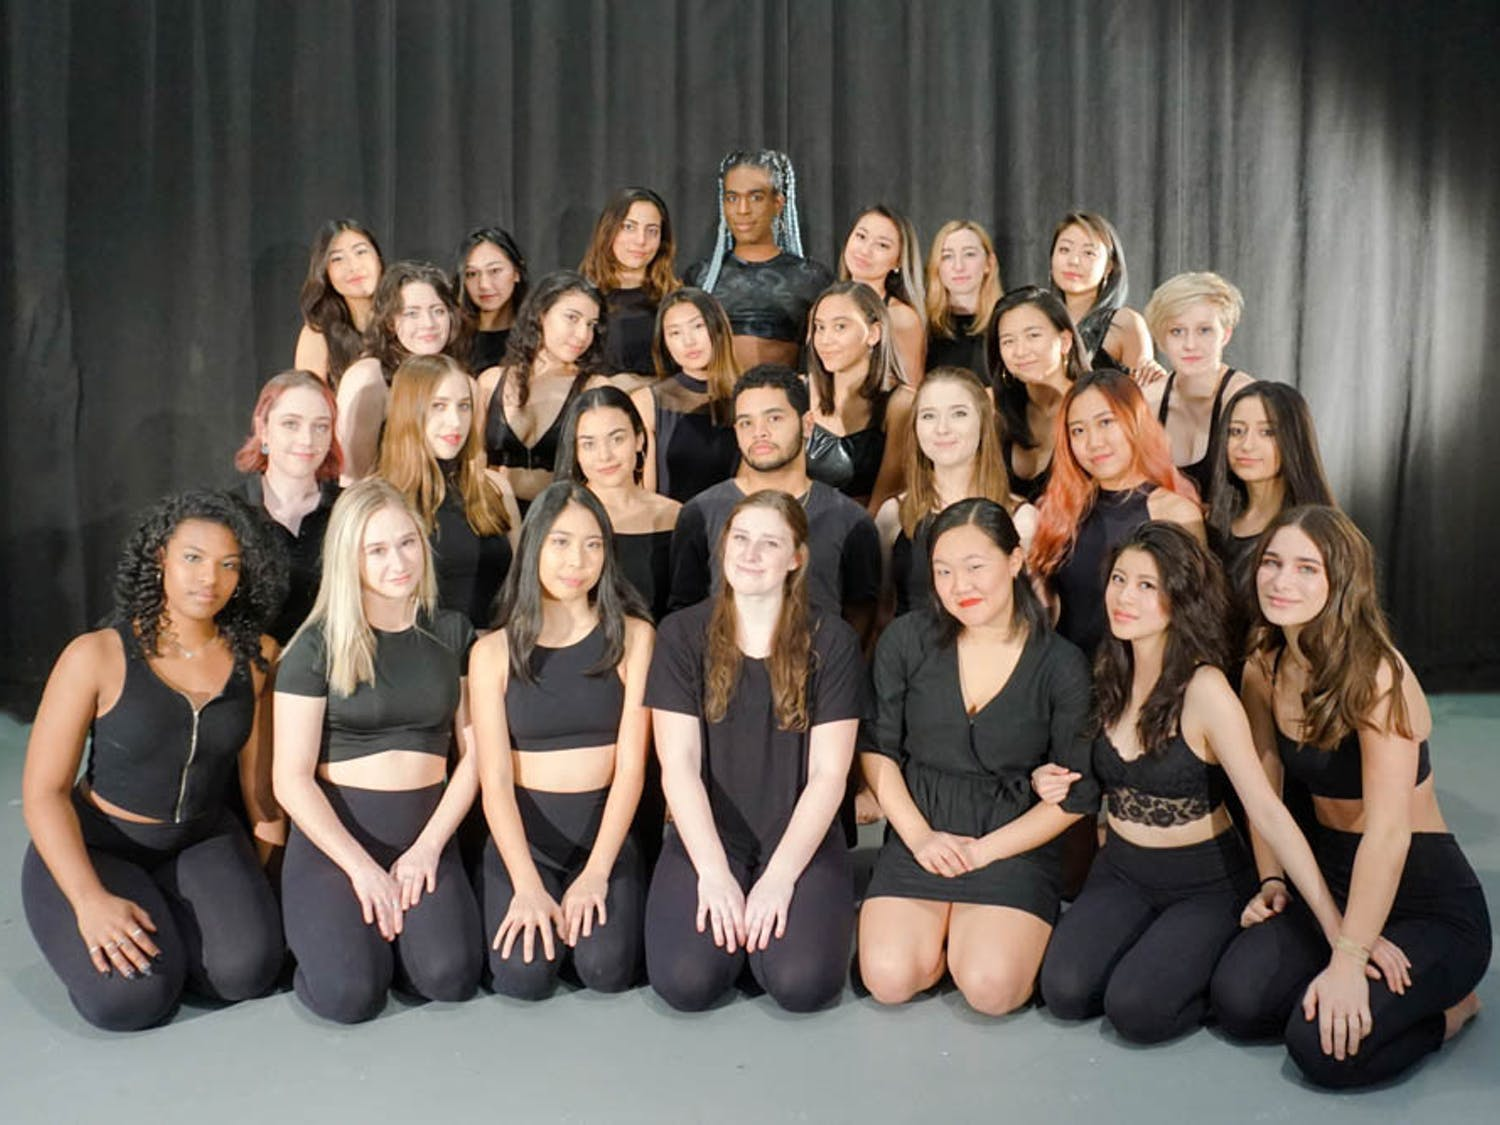 Michael_Fusion-Dance-Company-Spring-Show_George-Noll